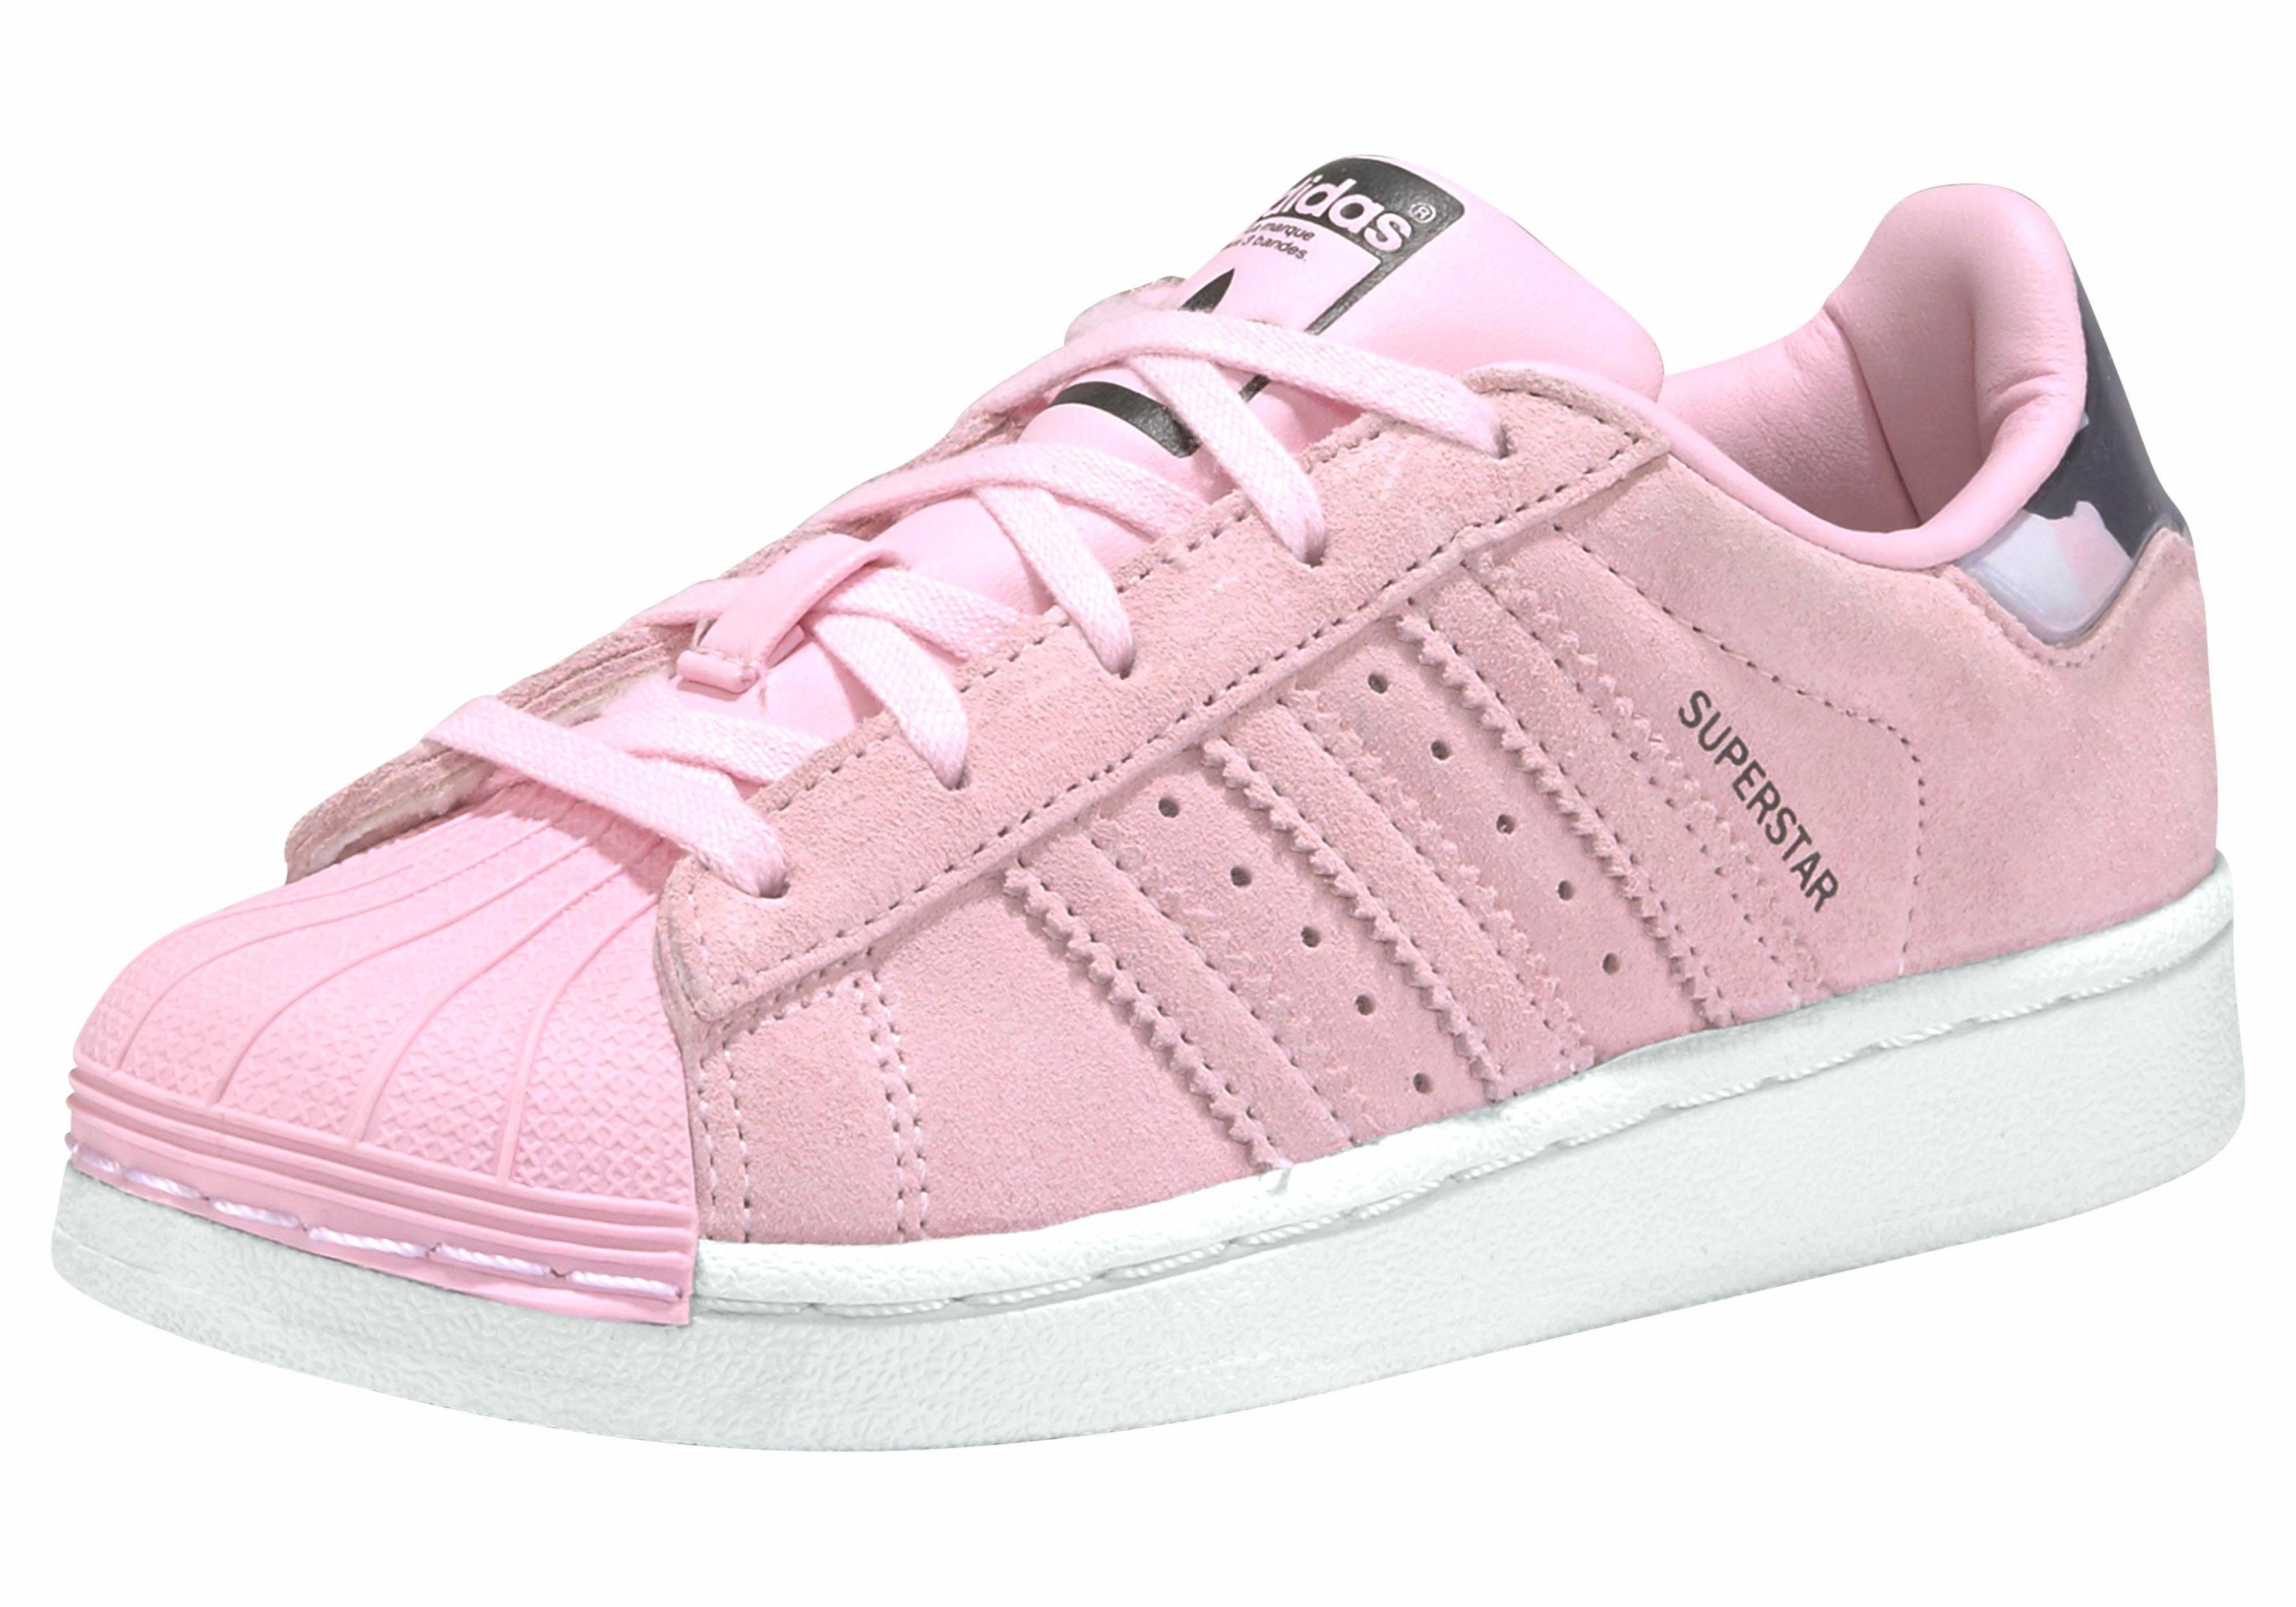 Adidas Sneakers Bestellen Adidas Originals Superstar